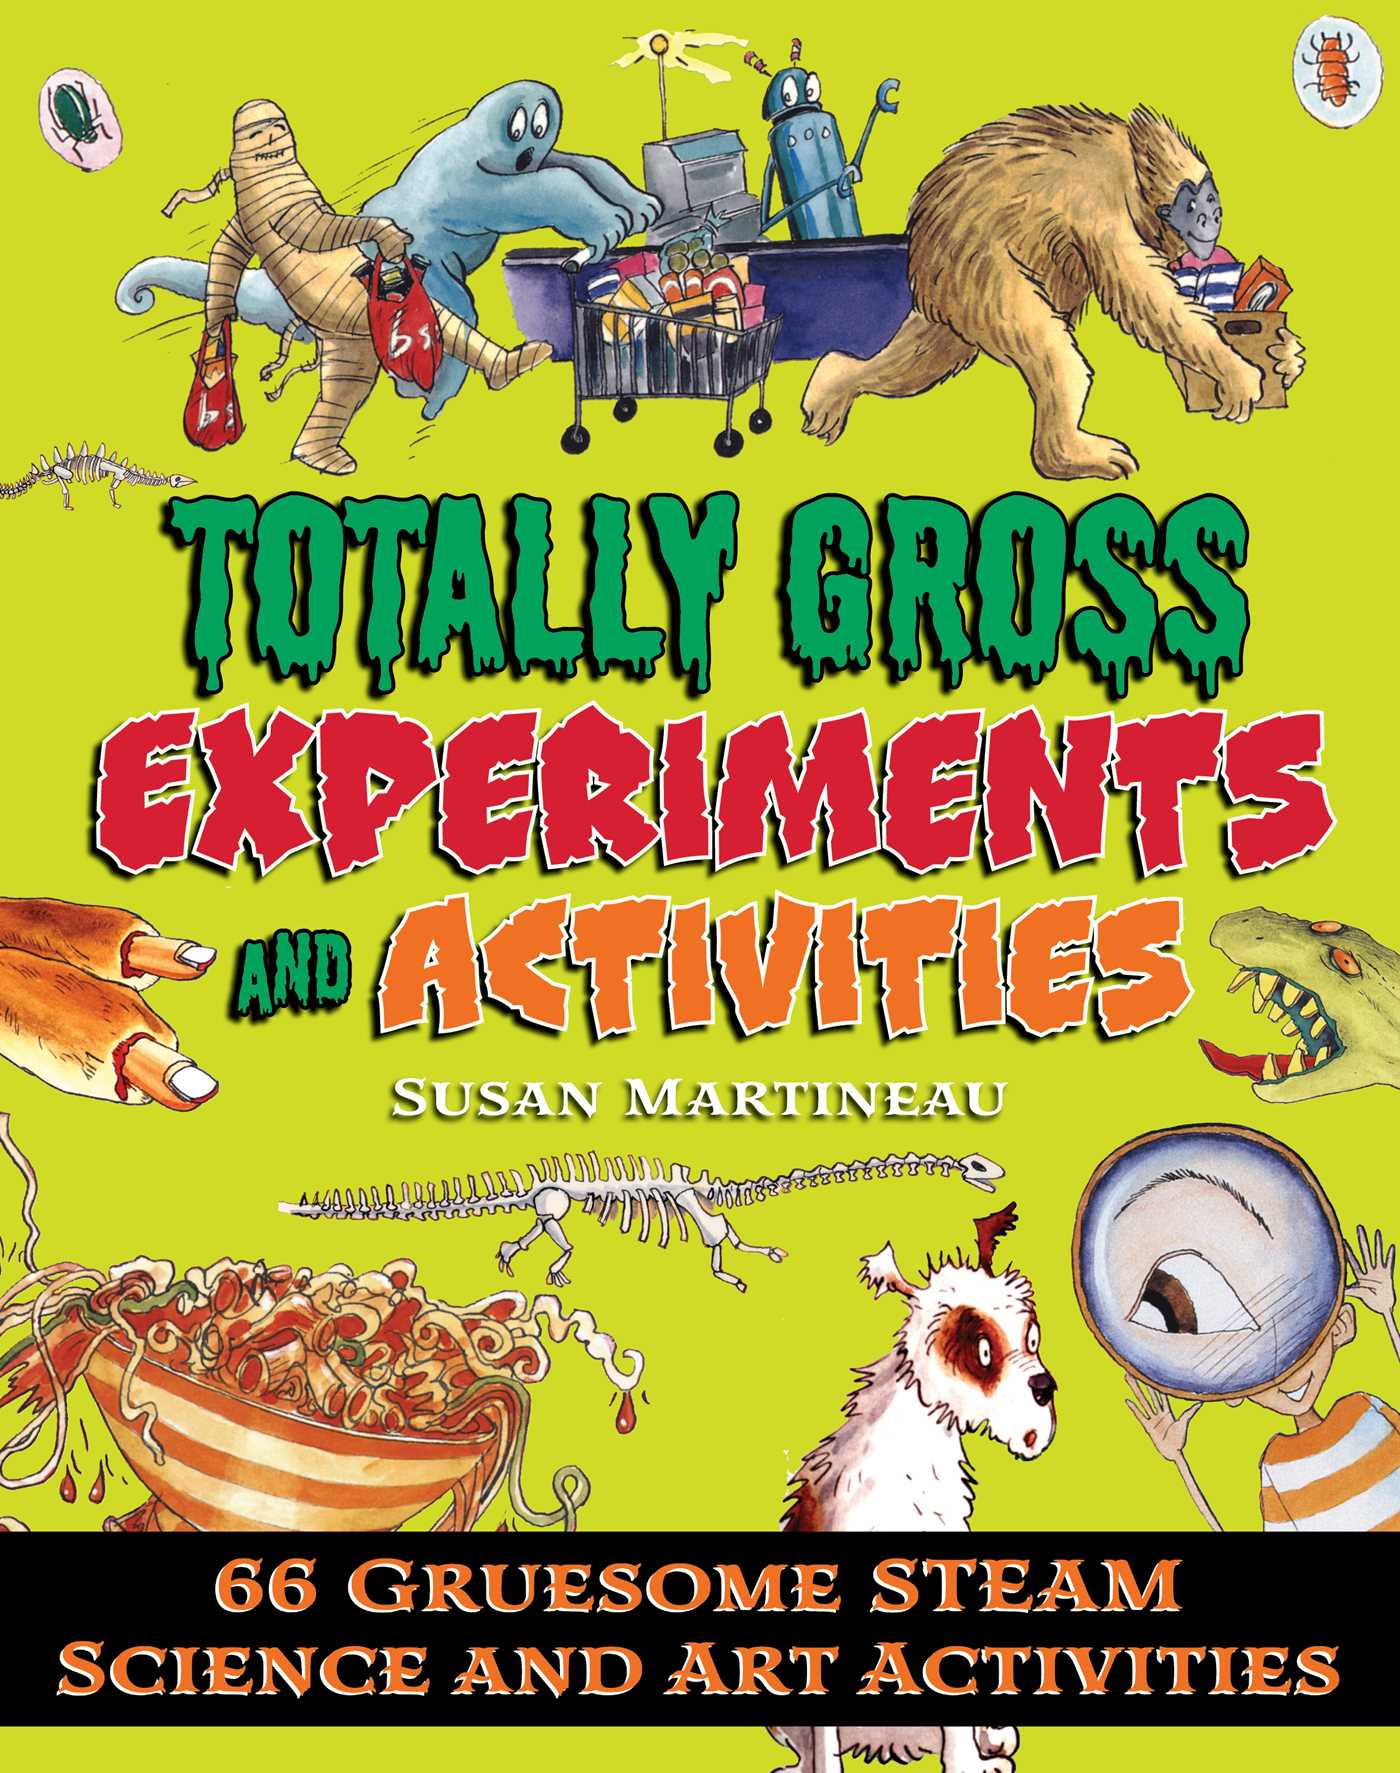 Totally Gross Experiments and Activities 66 Gruesome STEAM Science and Art Activities